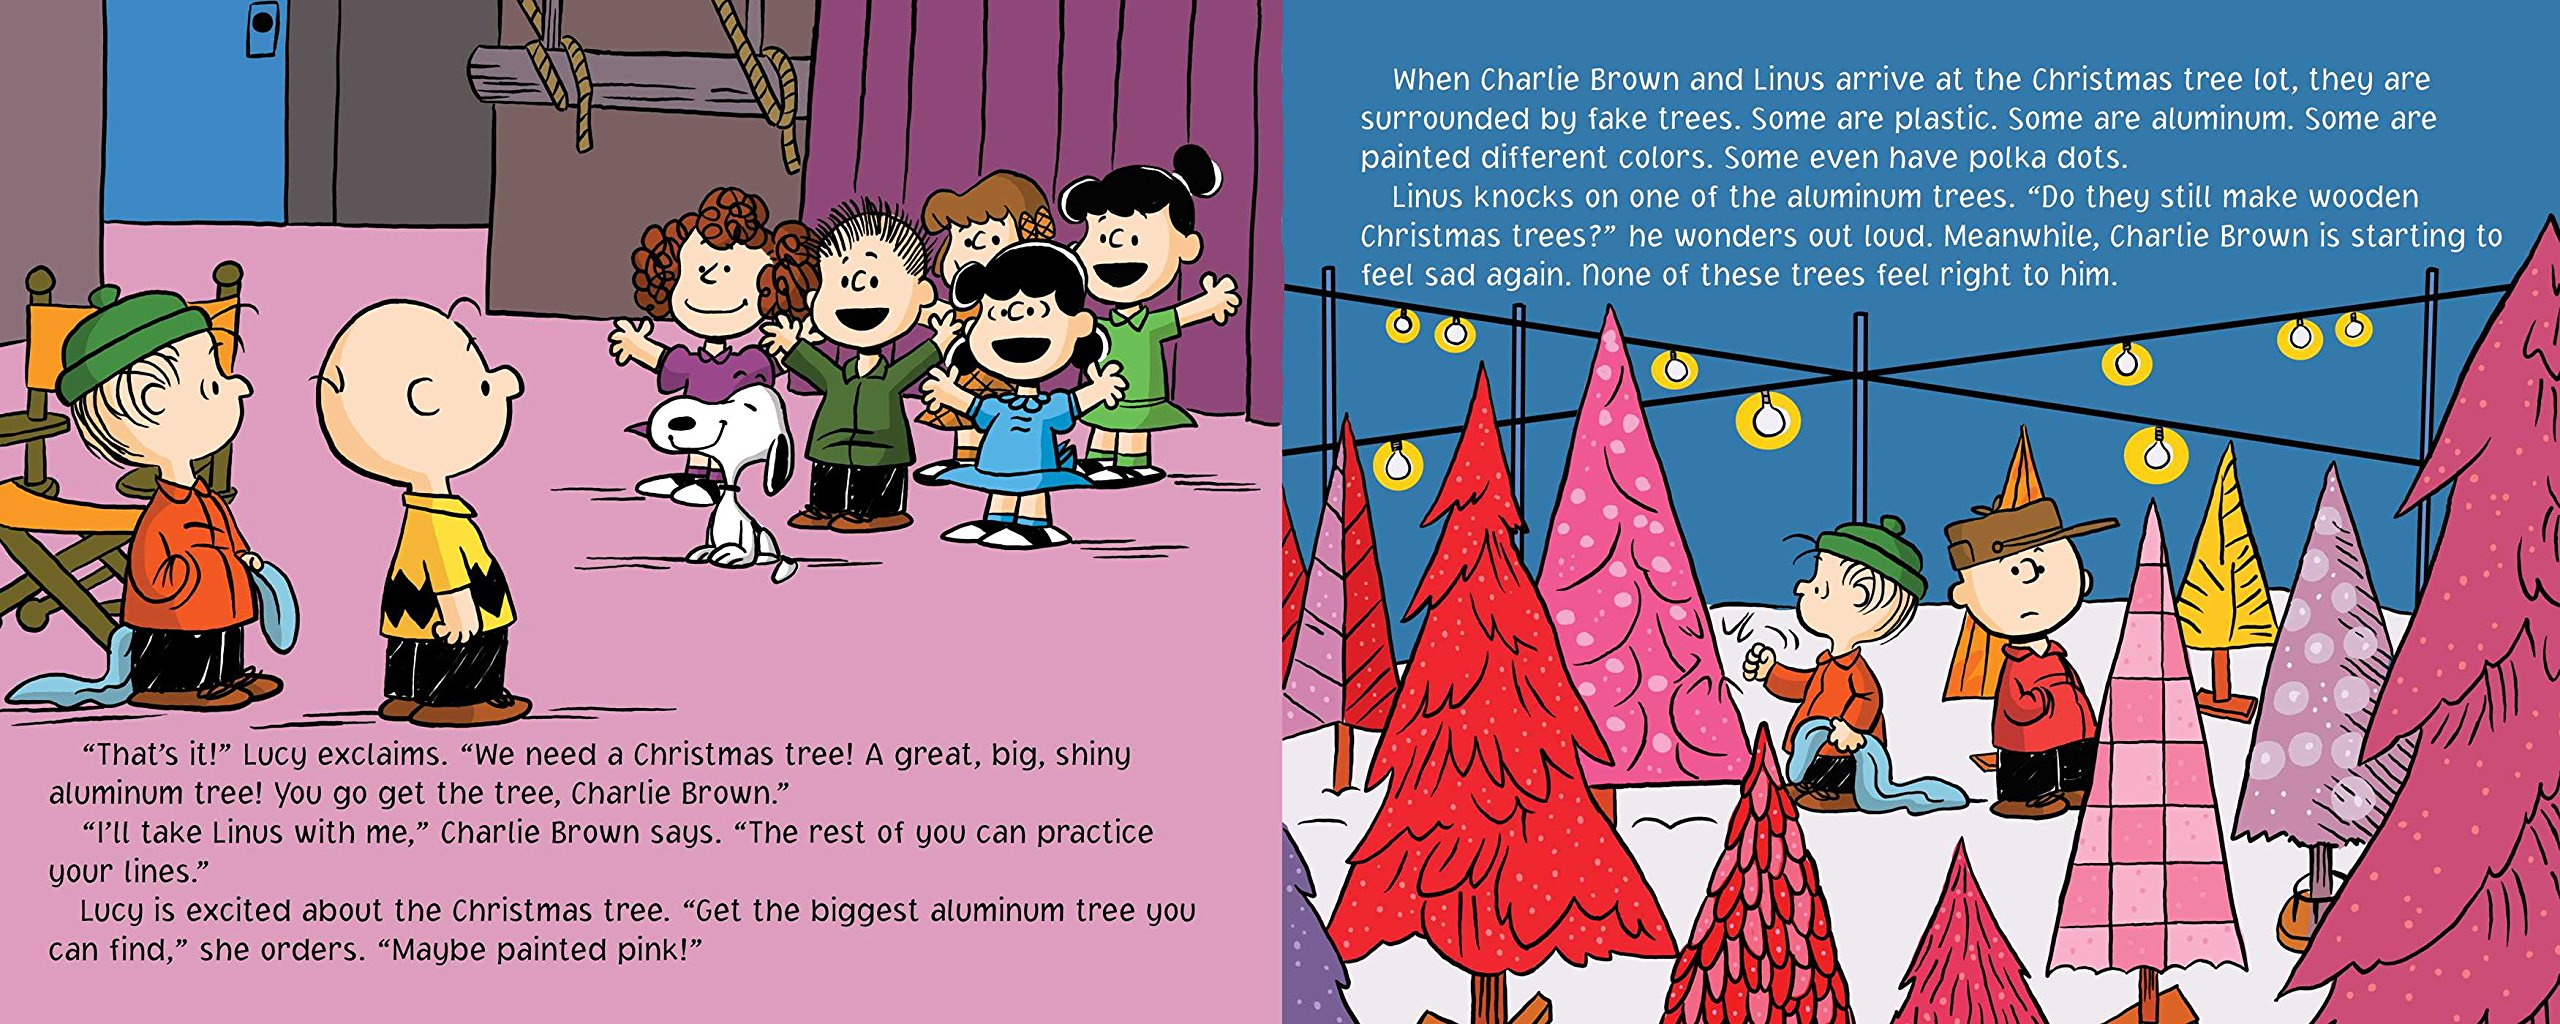 a charlie brown christmas peanuts tina gallo charles m schulz scott jeralds 9781481444323 amazoncom books